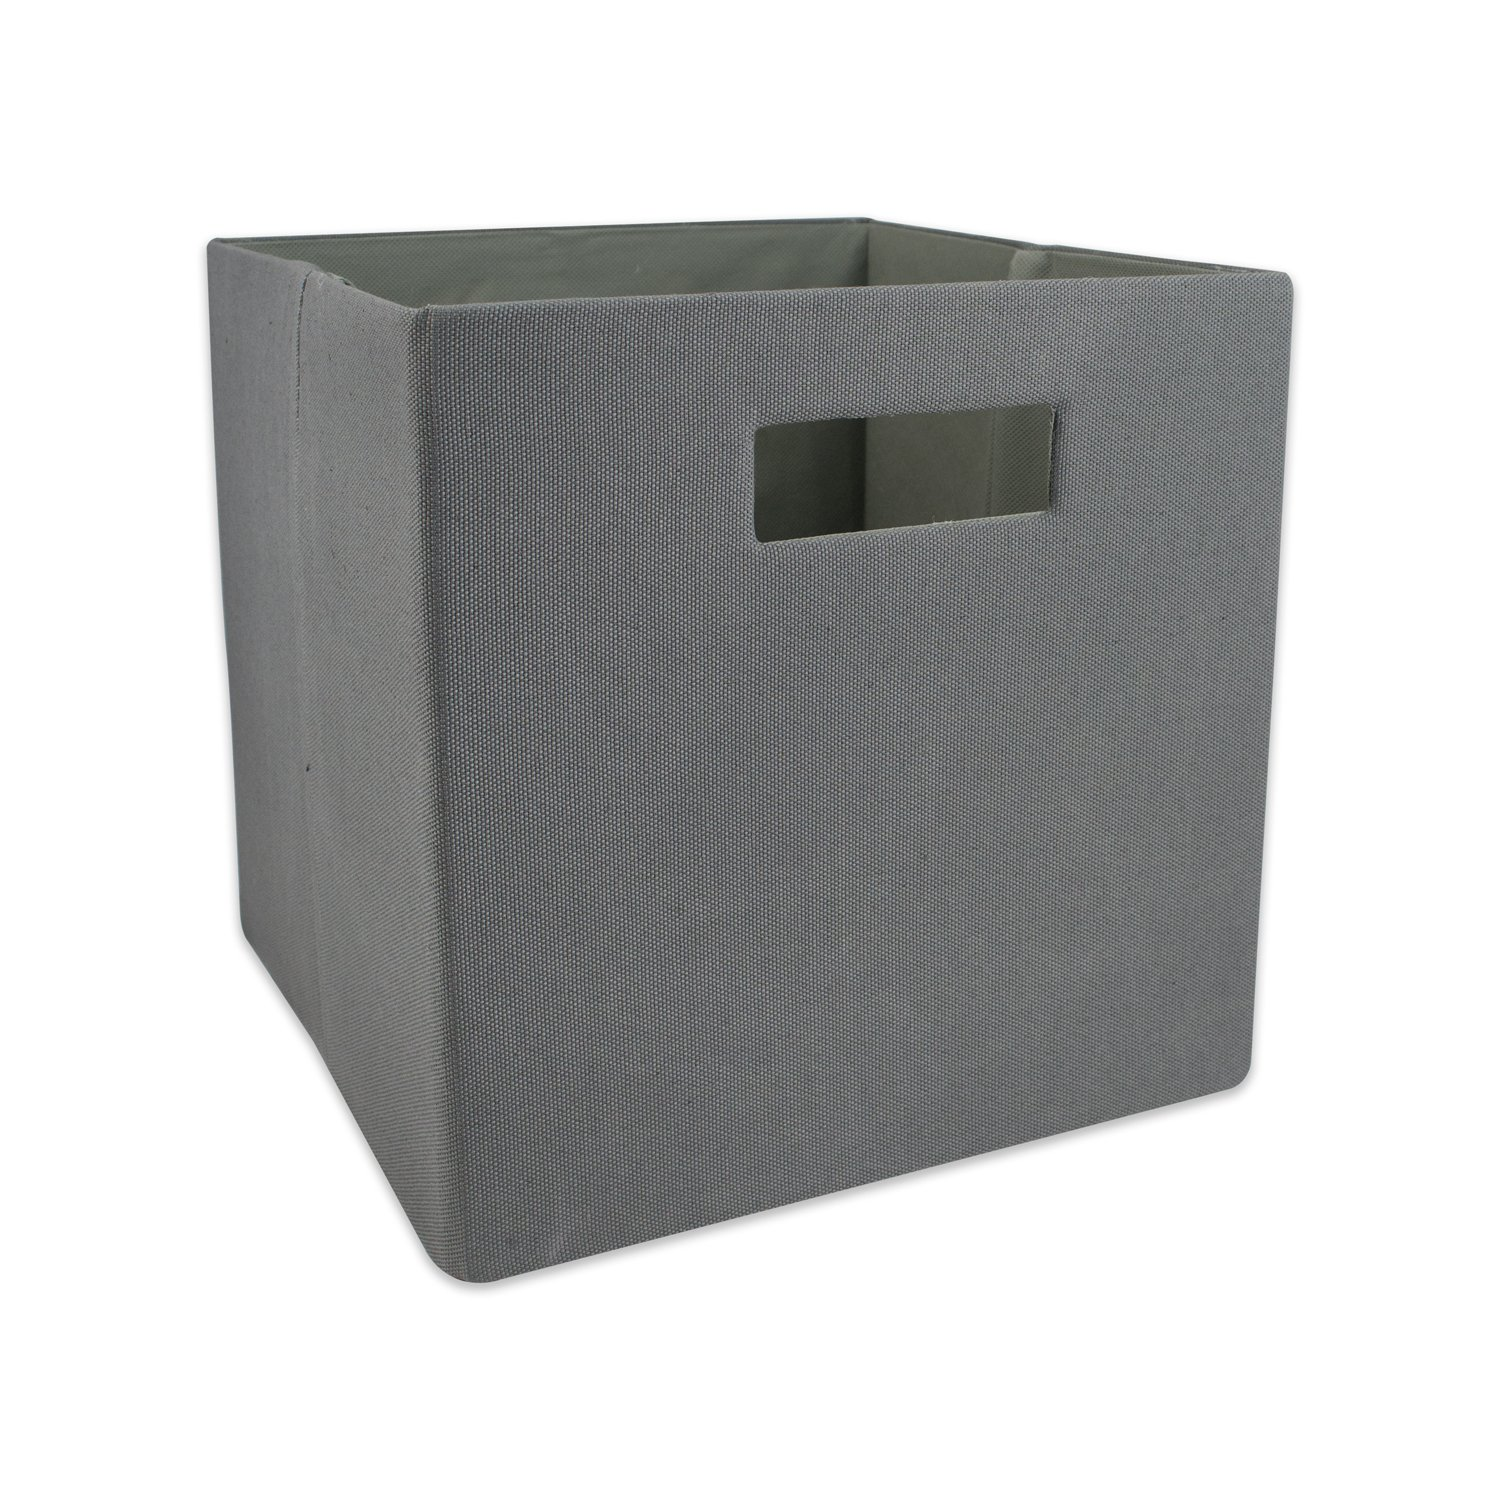 """DII Hard Sided Collapsible Fabric Storage Container for Nursery, Offices, & Home Organization, (11x11x11"""") - Solid Gray"""